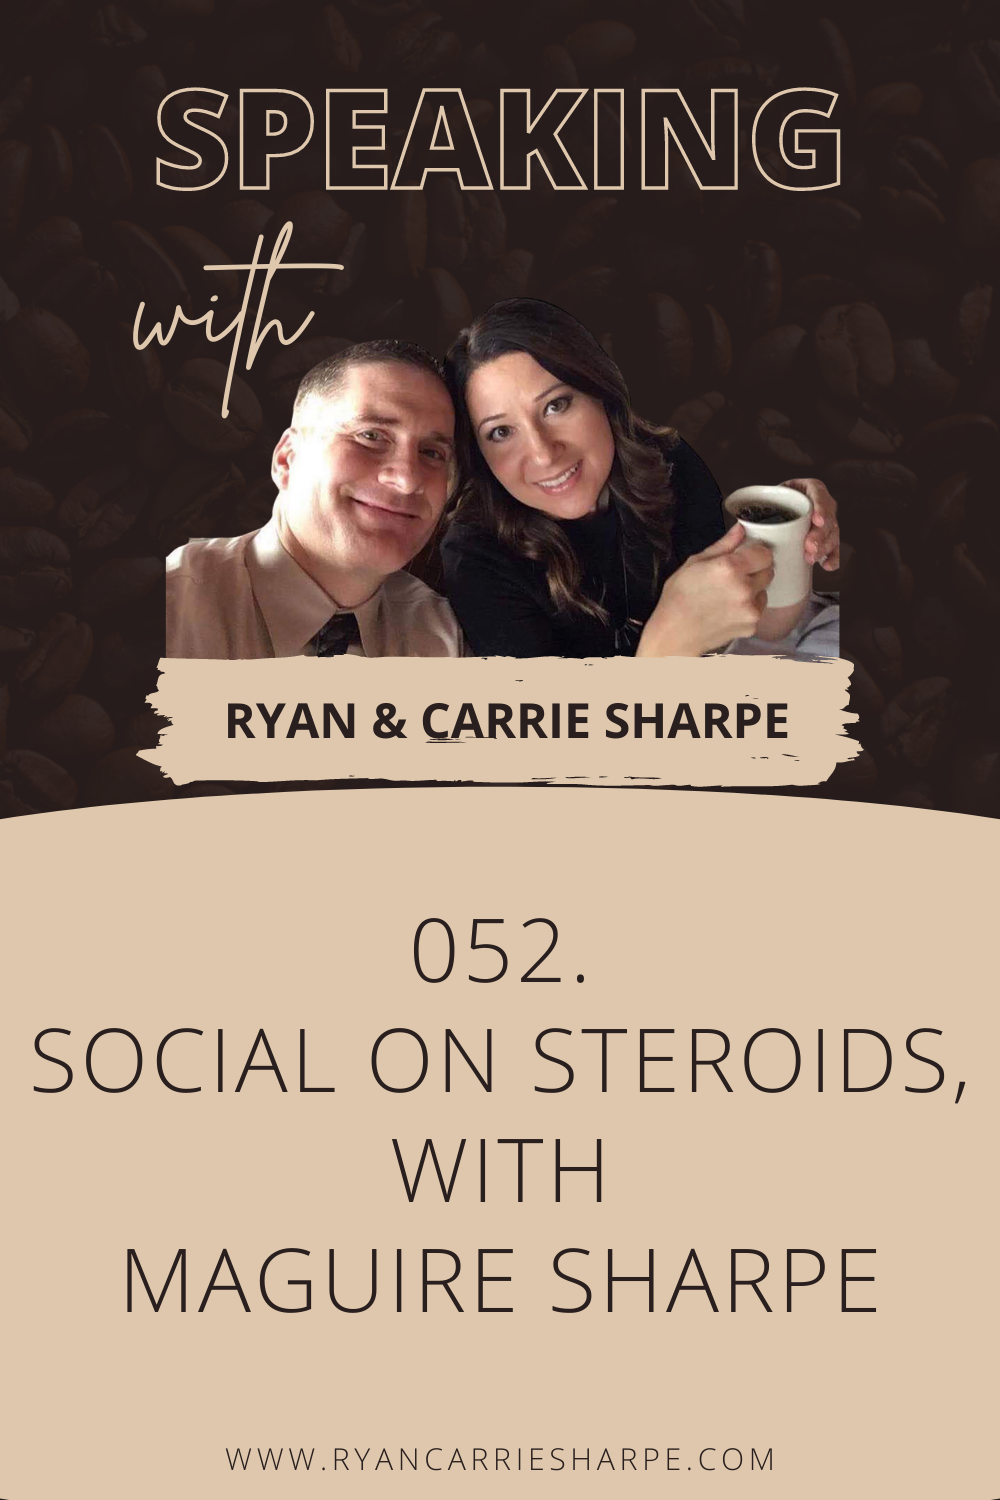 052. Social On Steroids, with Maguire Sharpe [COMMUNICATION FOUNDATION SERIES] | Speaking with Ryan & Carrie Sharpe podcast